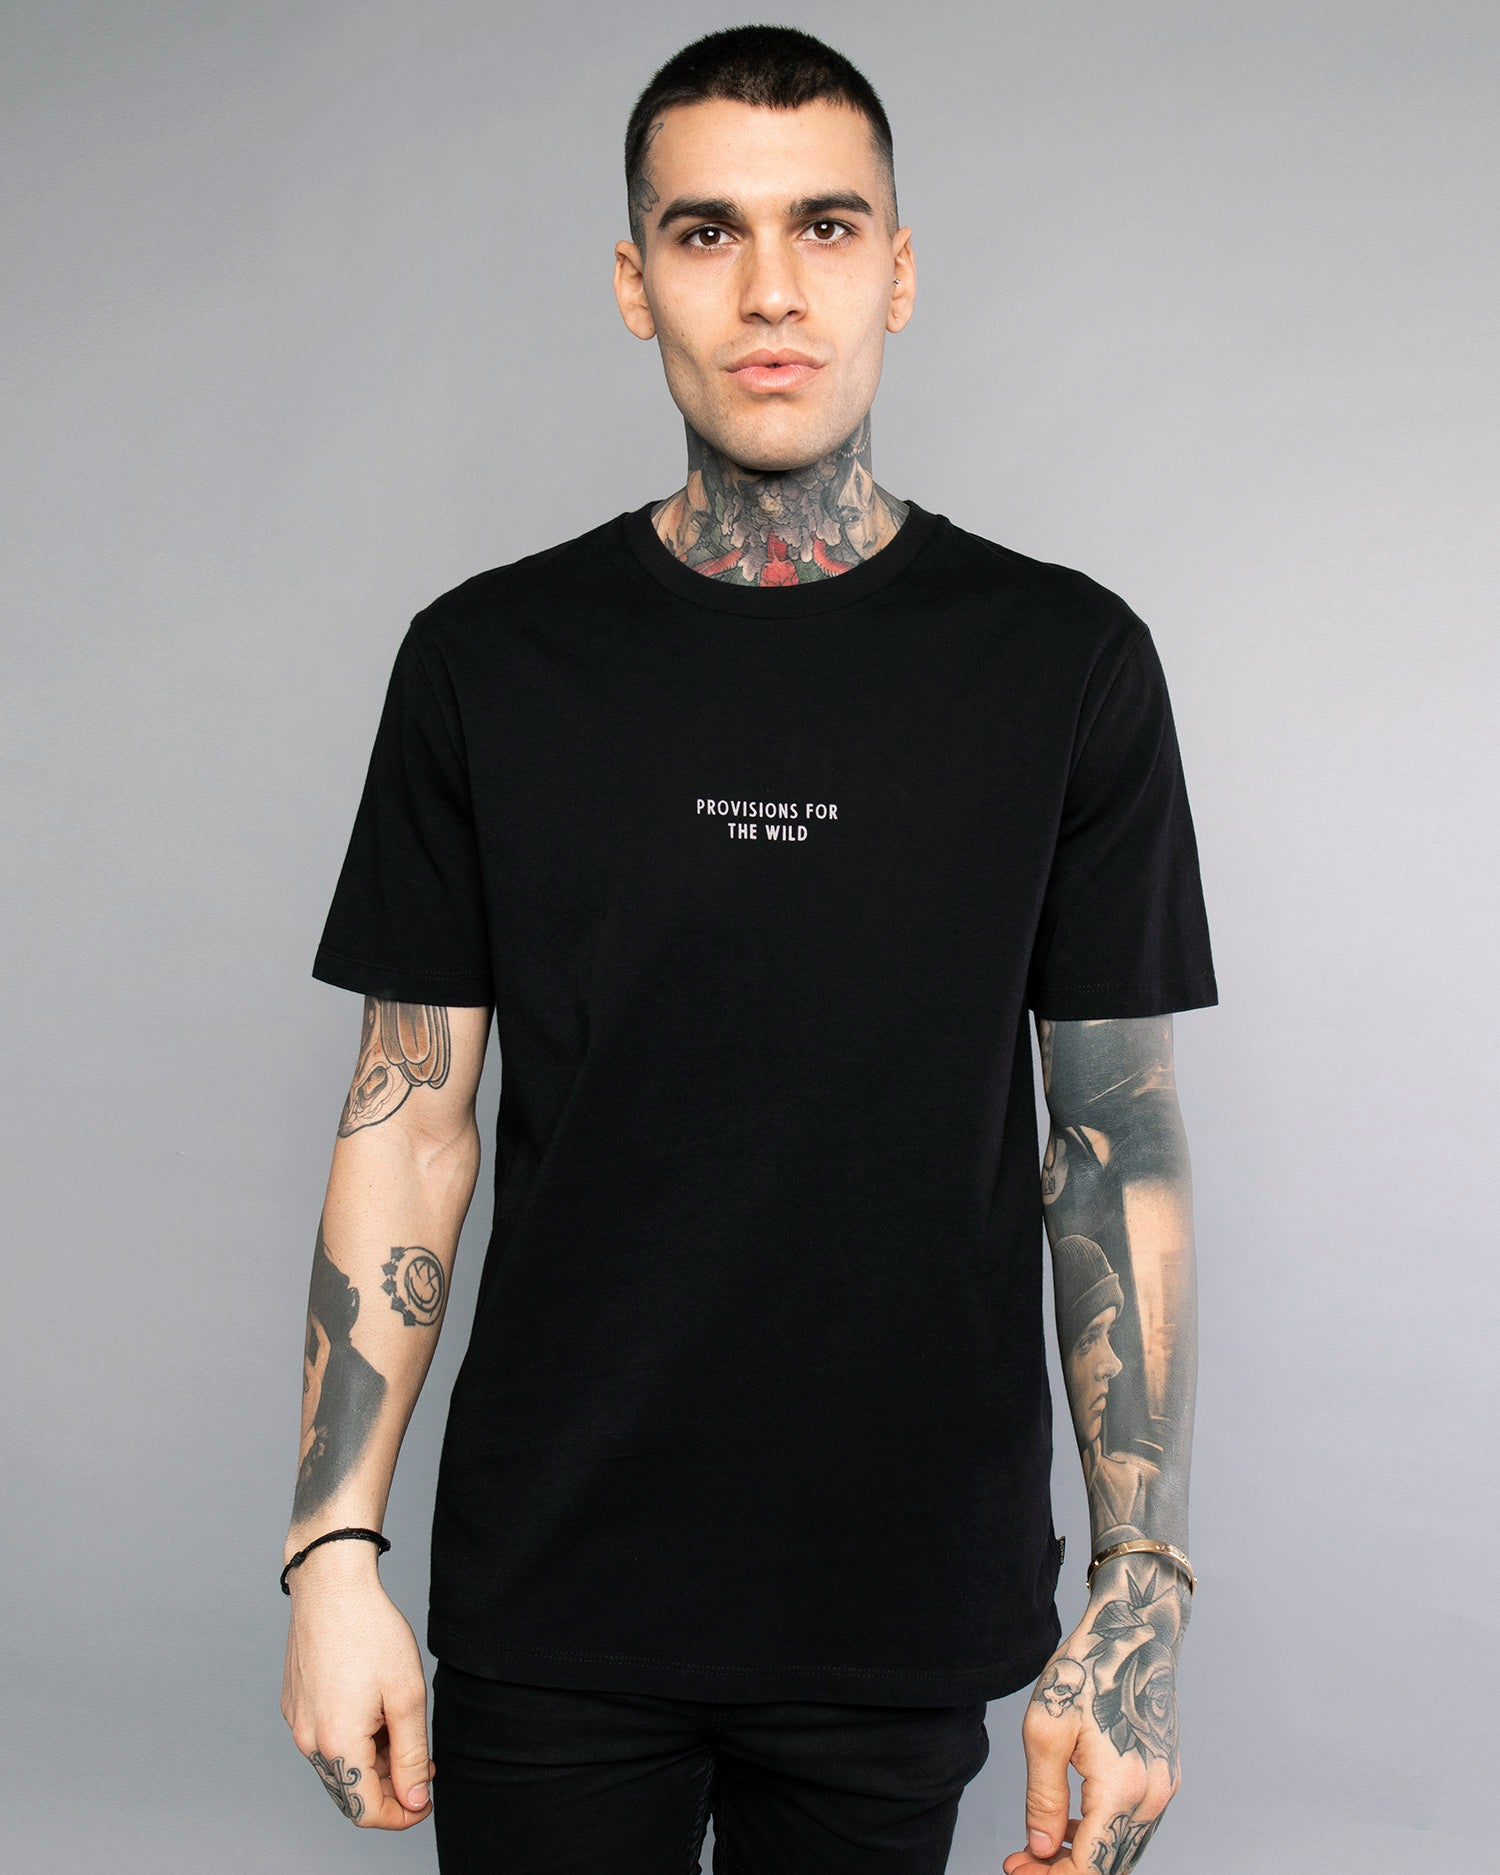 Mens Provisions for the wild Black Tee